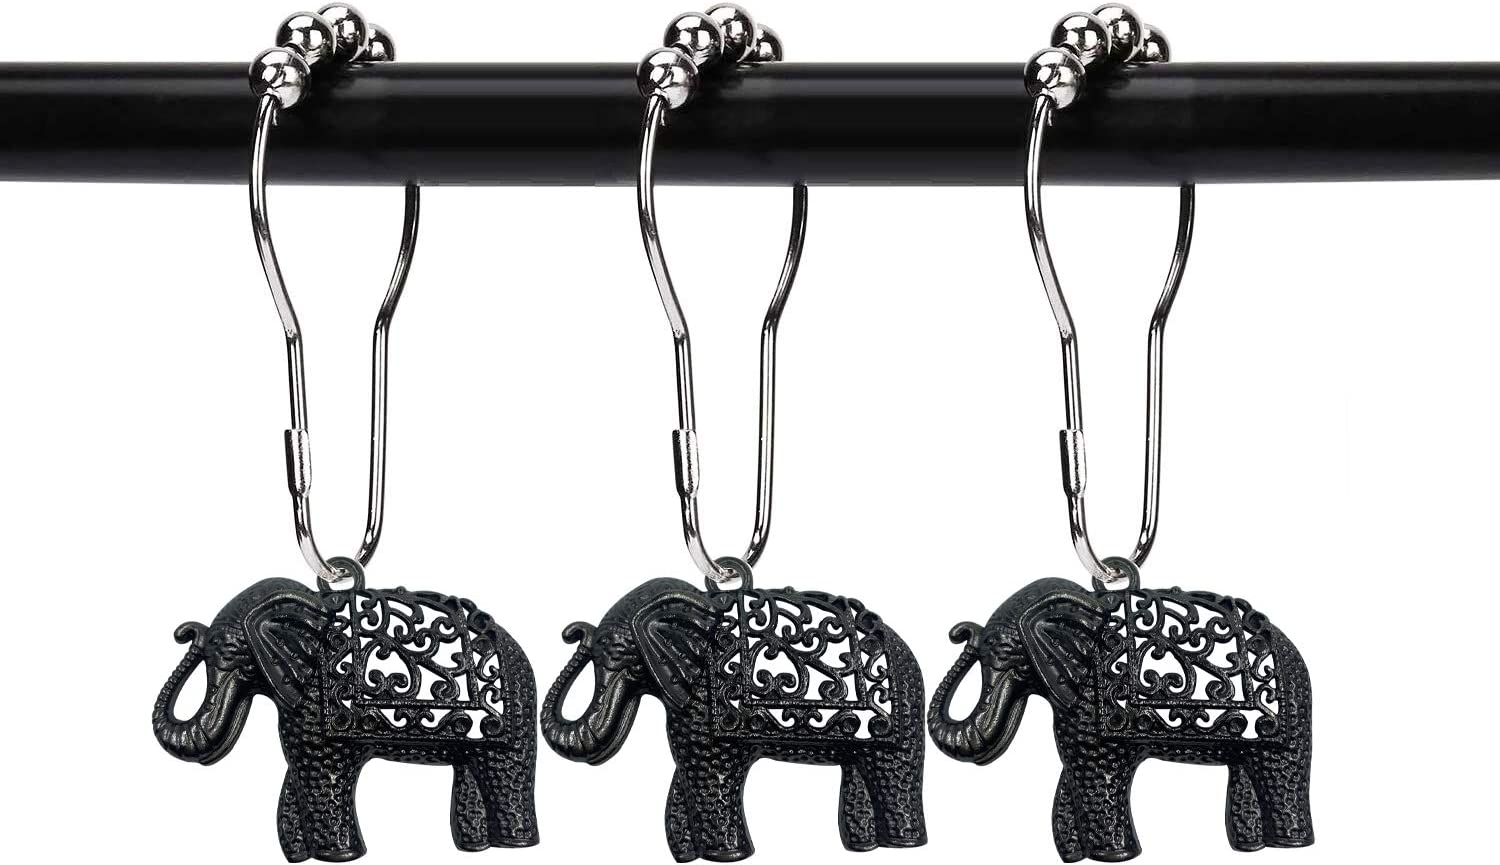 ZILucky Set of 12 Elephant Shower Curtain Hooks Decorative Home Bathroom Stainless Steel Rustproof Full Body with Filigree Swirls Shower Curtain Rings Decor Accessories (Black)